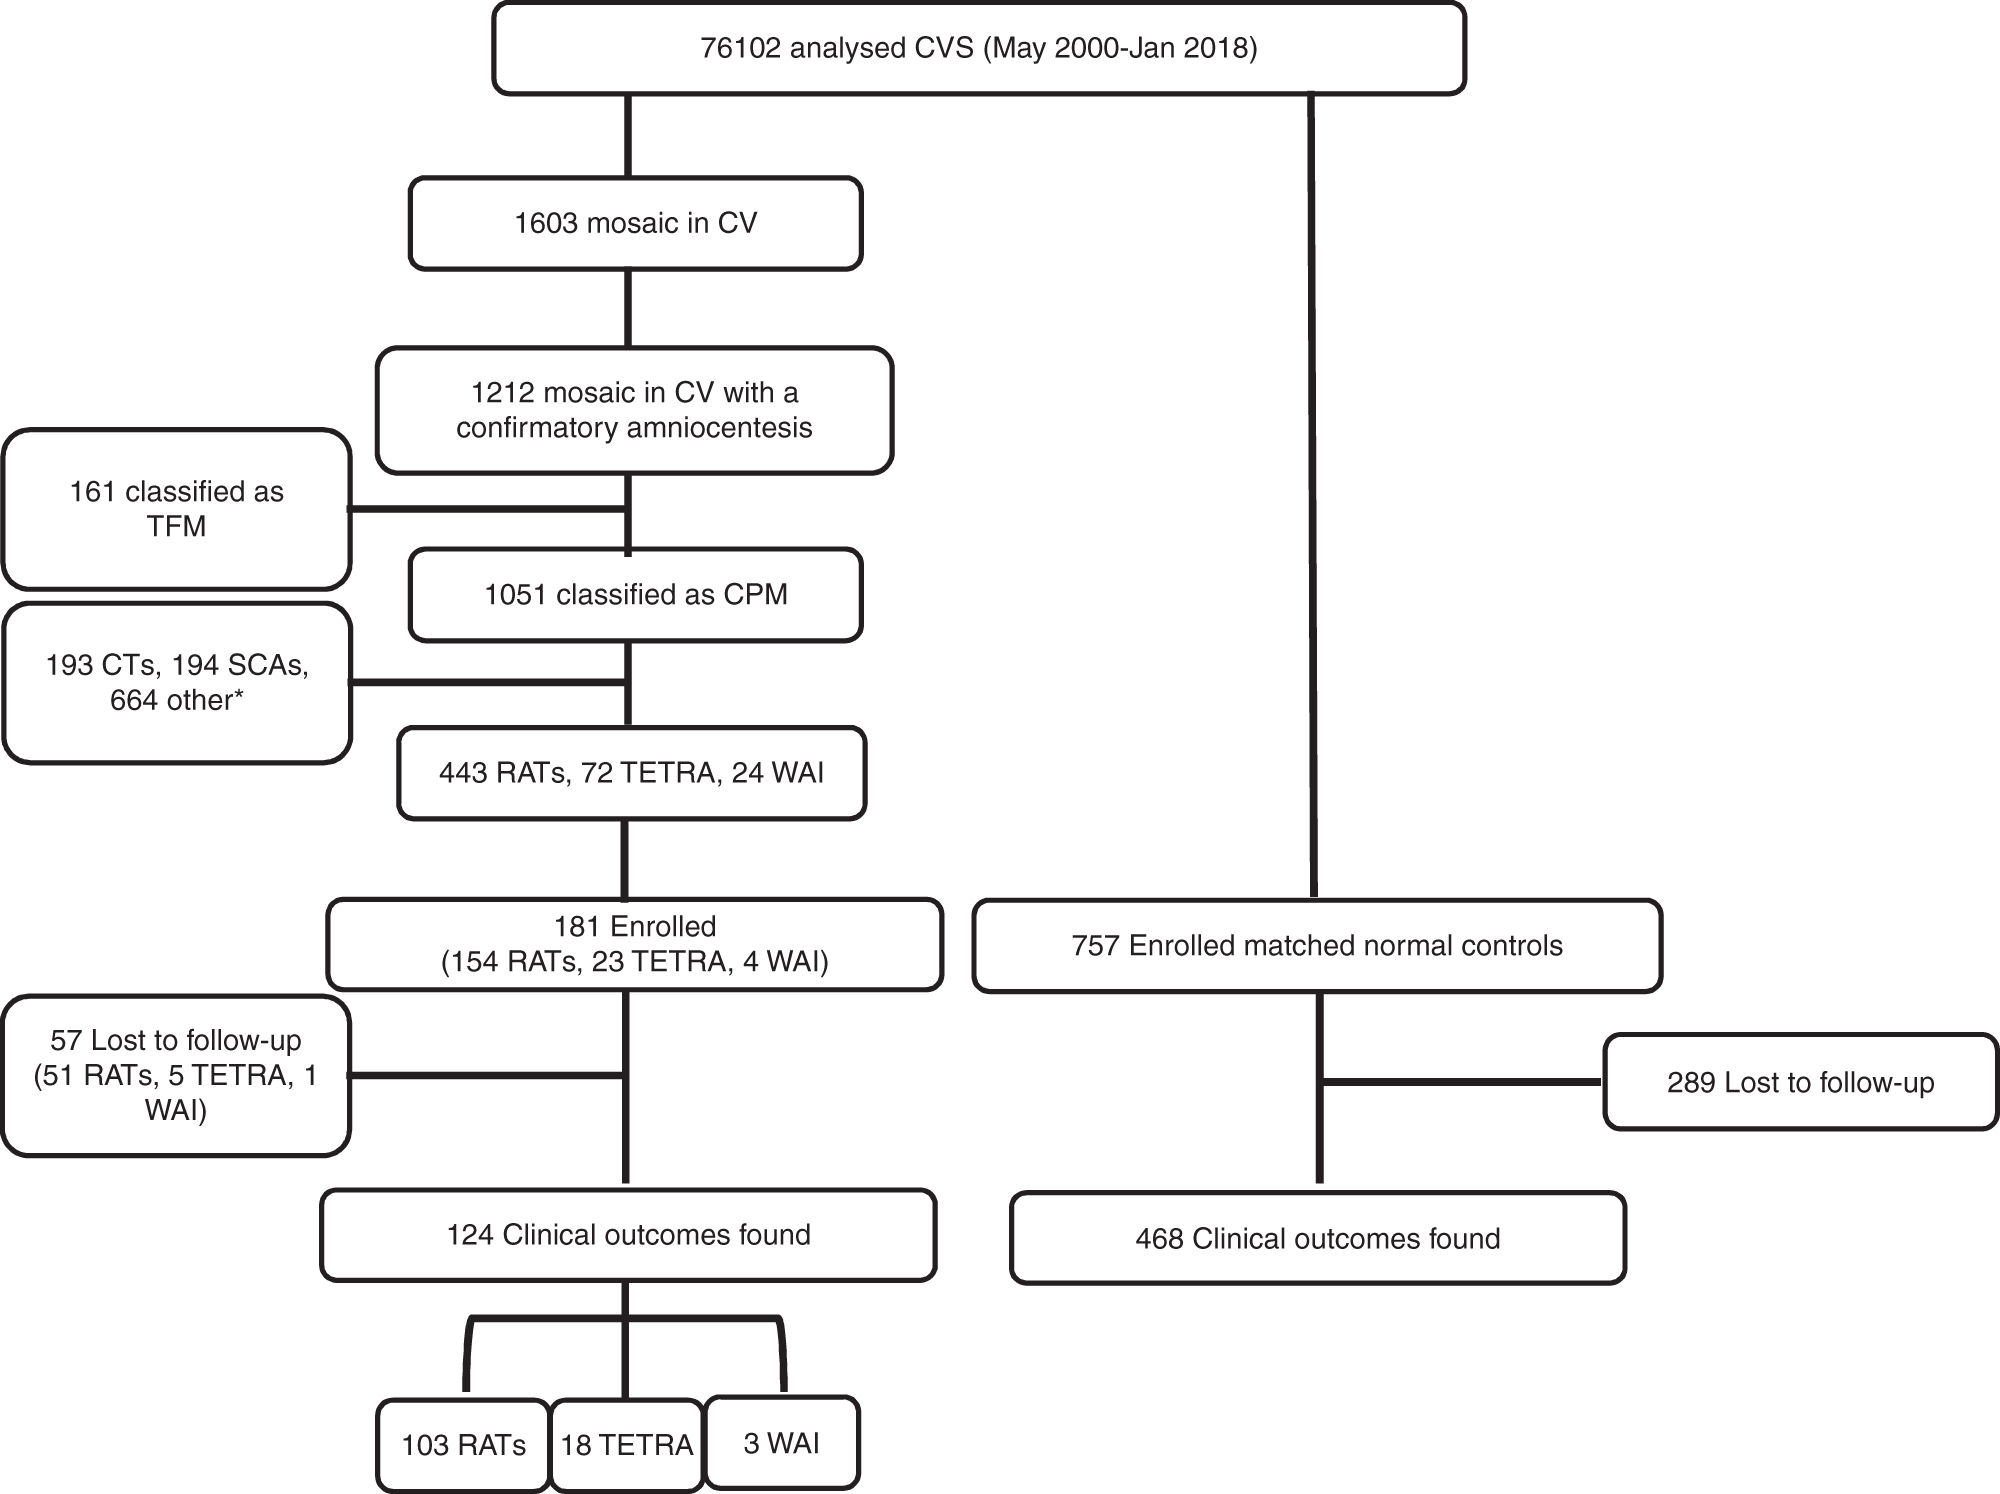 Outcomes in pregnancies with a confined placental mosaicism